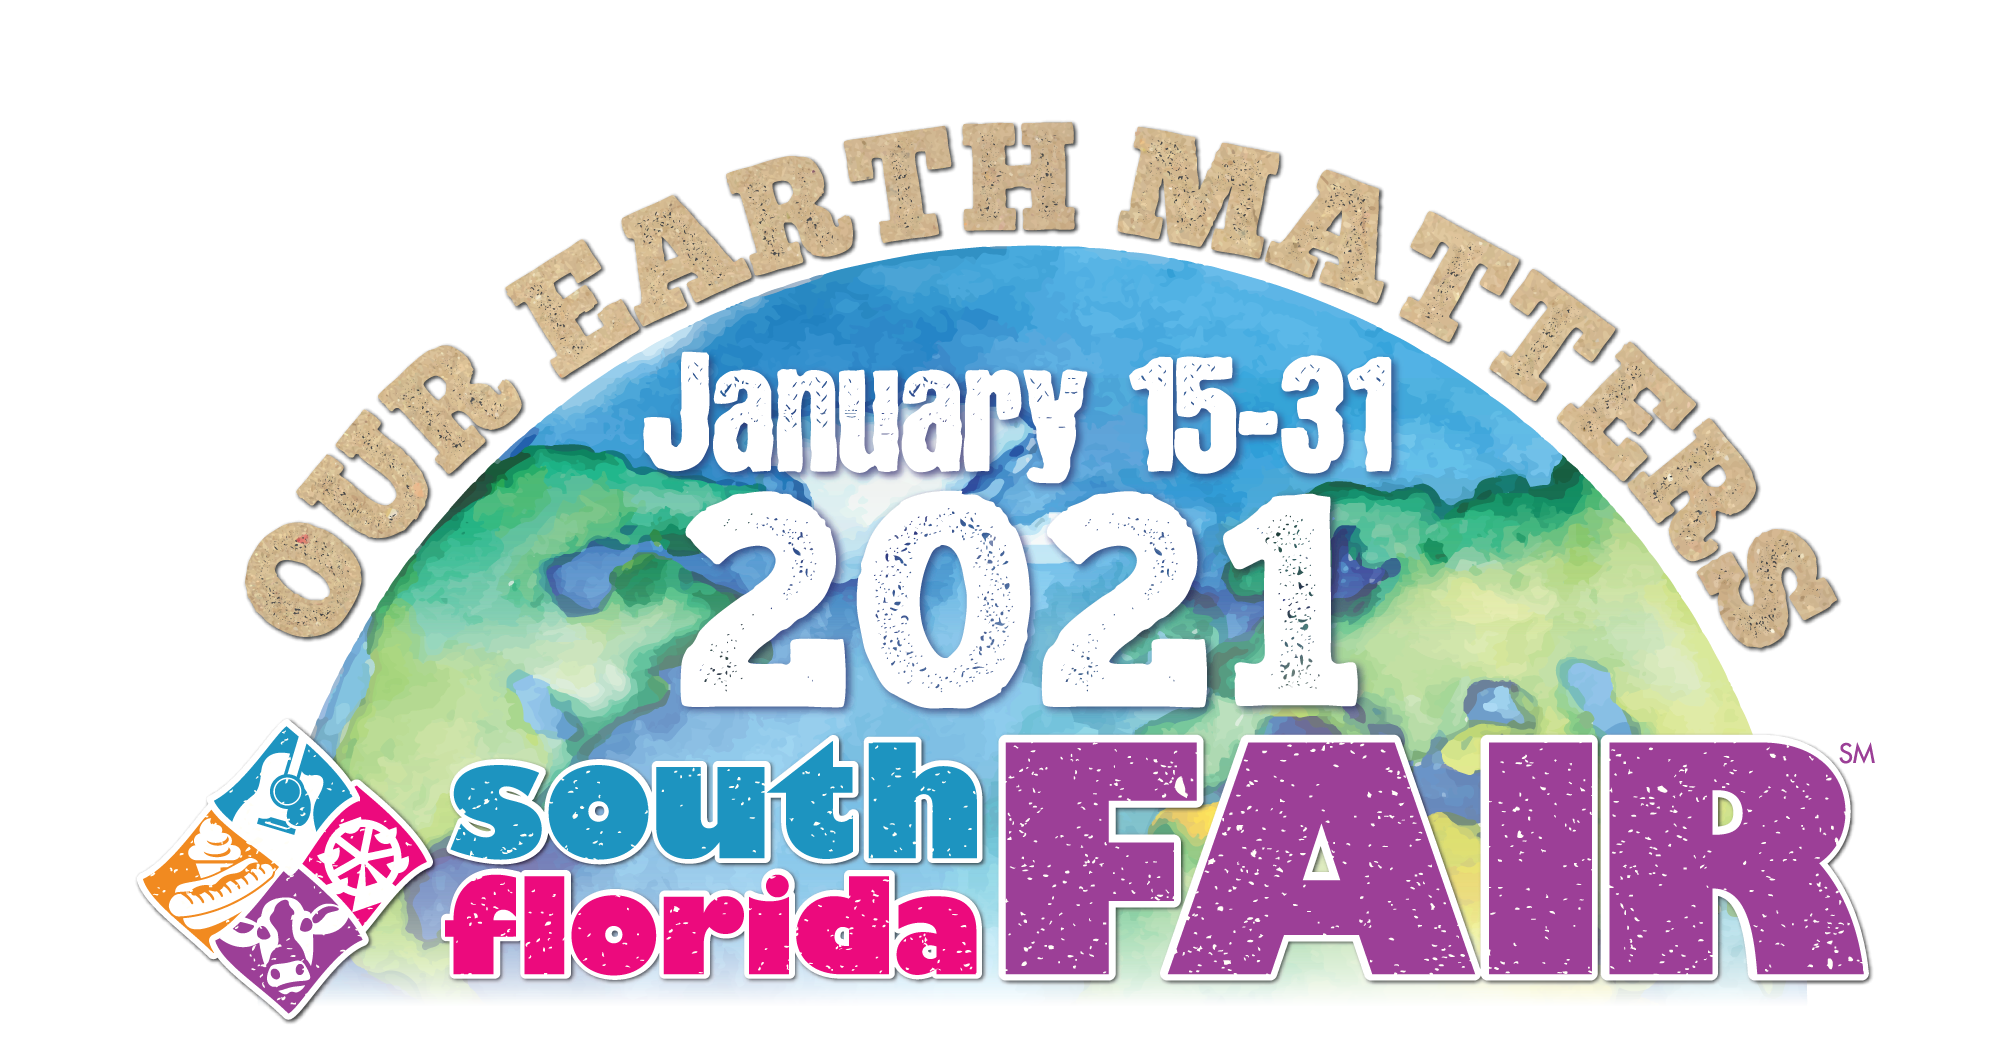 Our Earth Matters At The 2021 South Florida Fair, Jan. 15 31 Inside South Florida Fairgrounds Events 2021